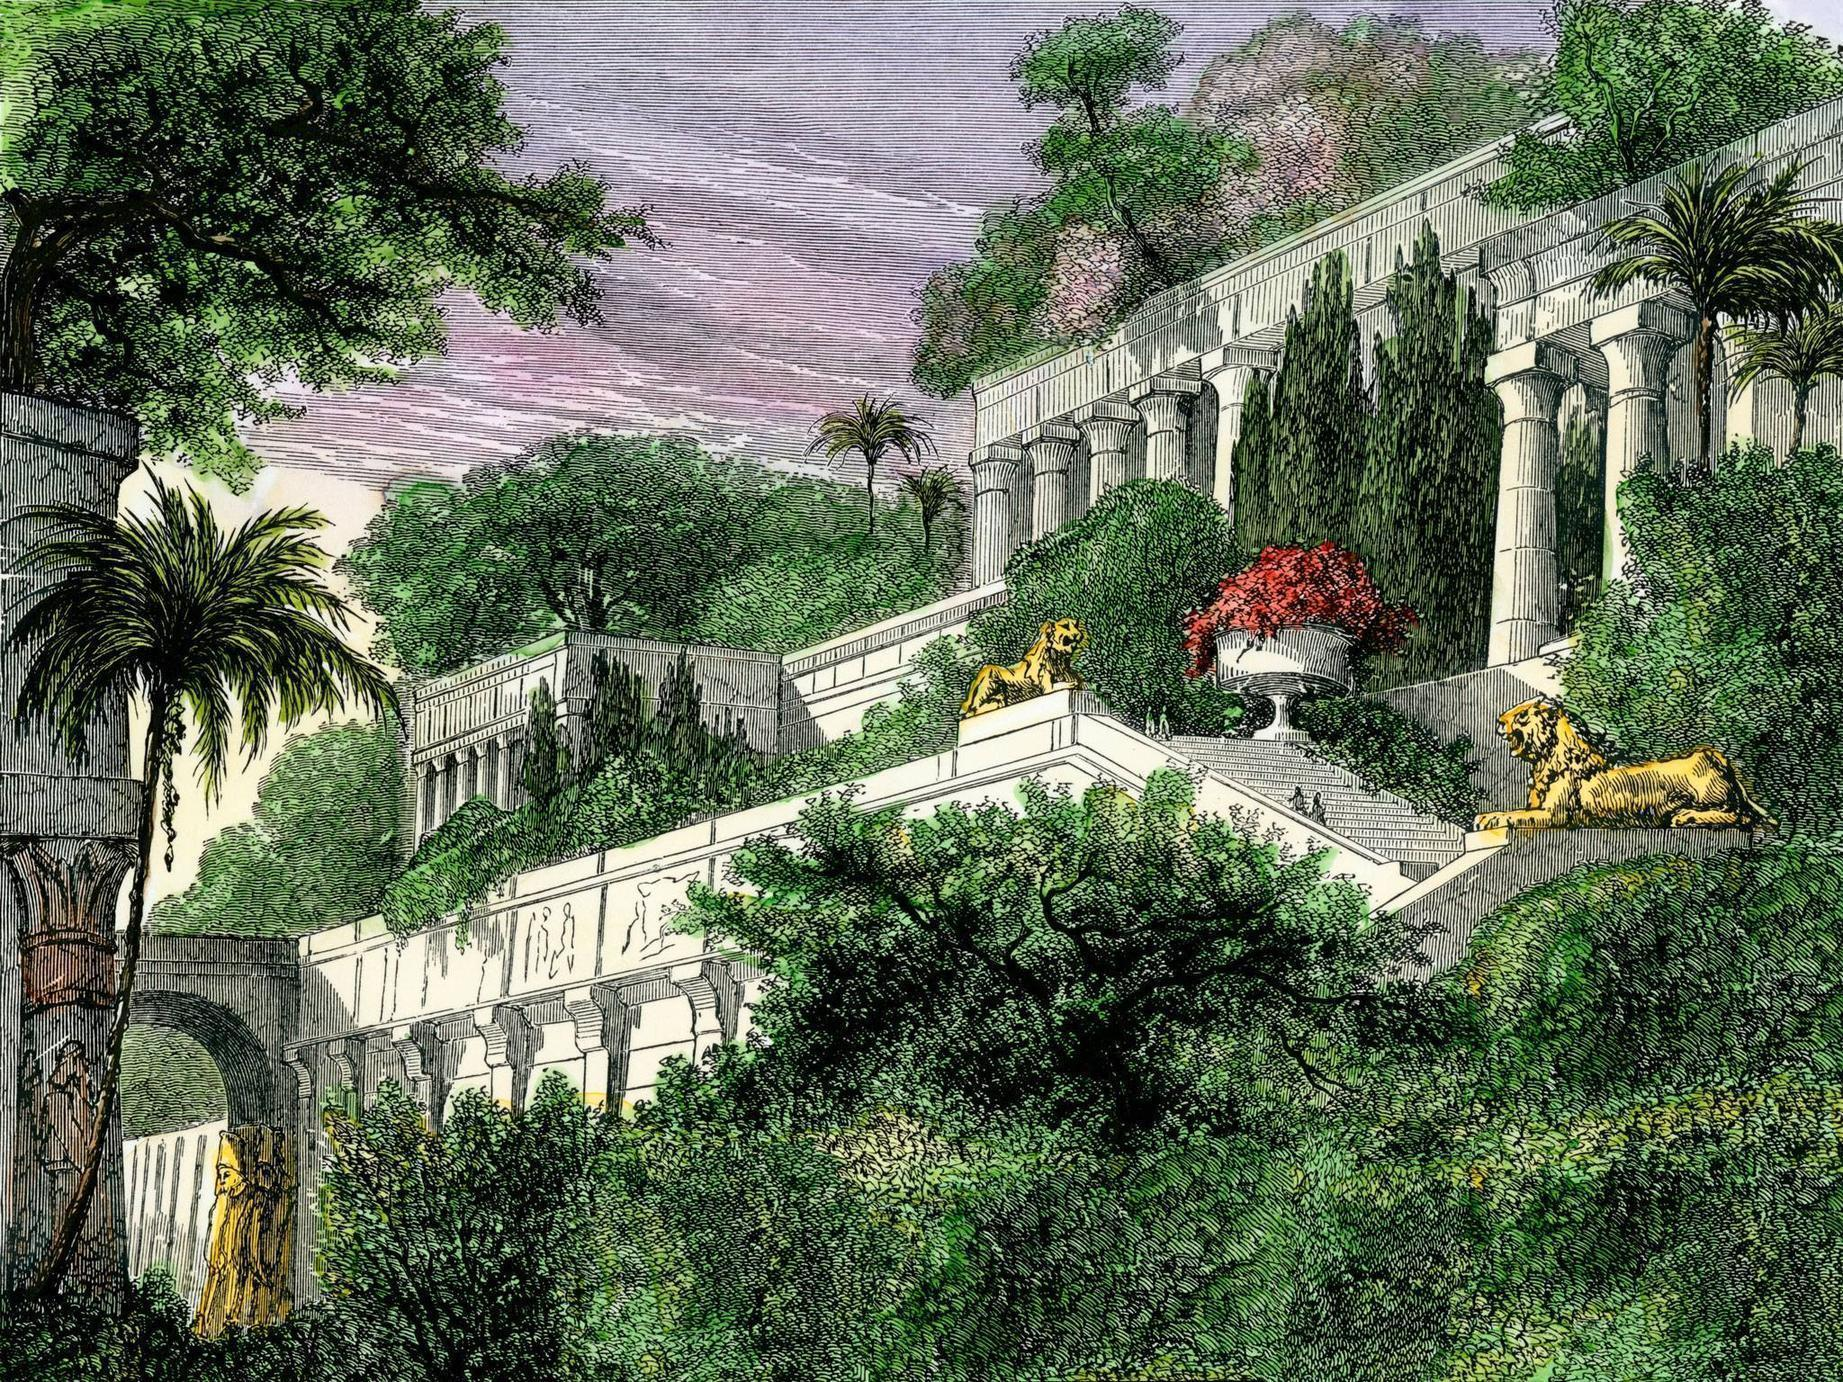 Hanging gardens of babylon wallpapers wallpaper cave for When was the hanging gardens of babylon destroyed